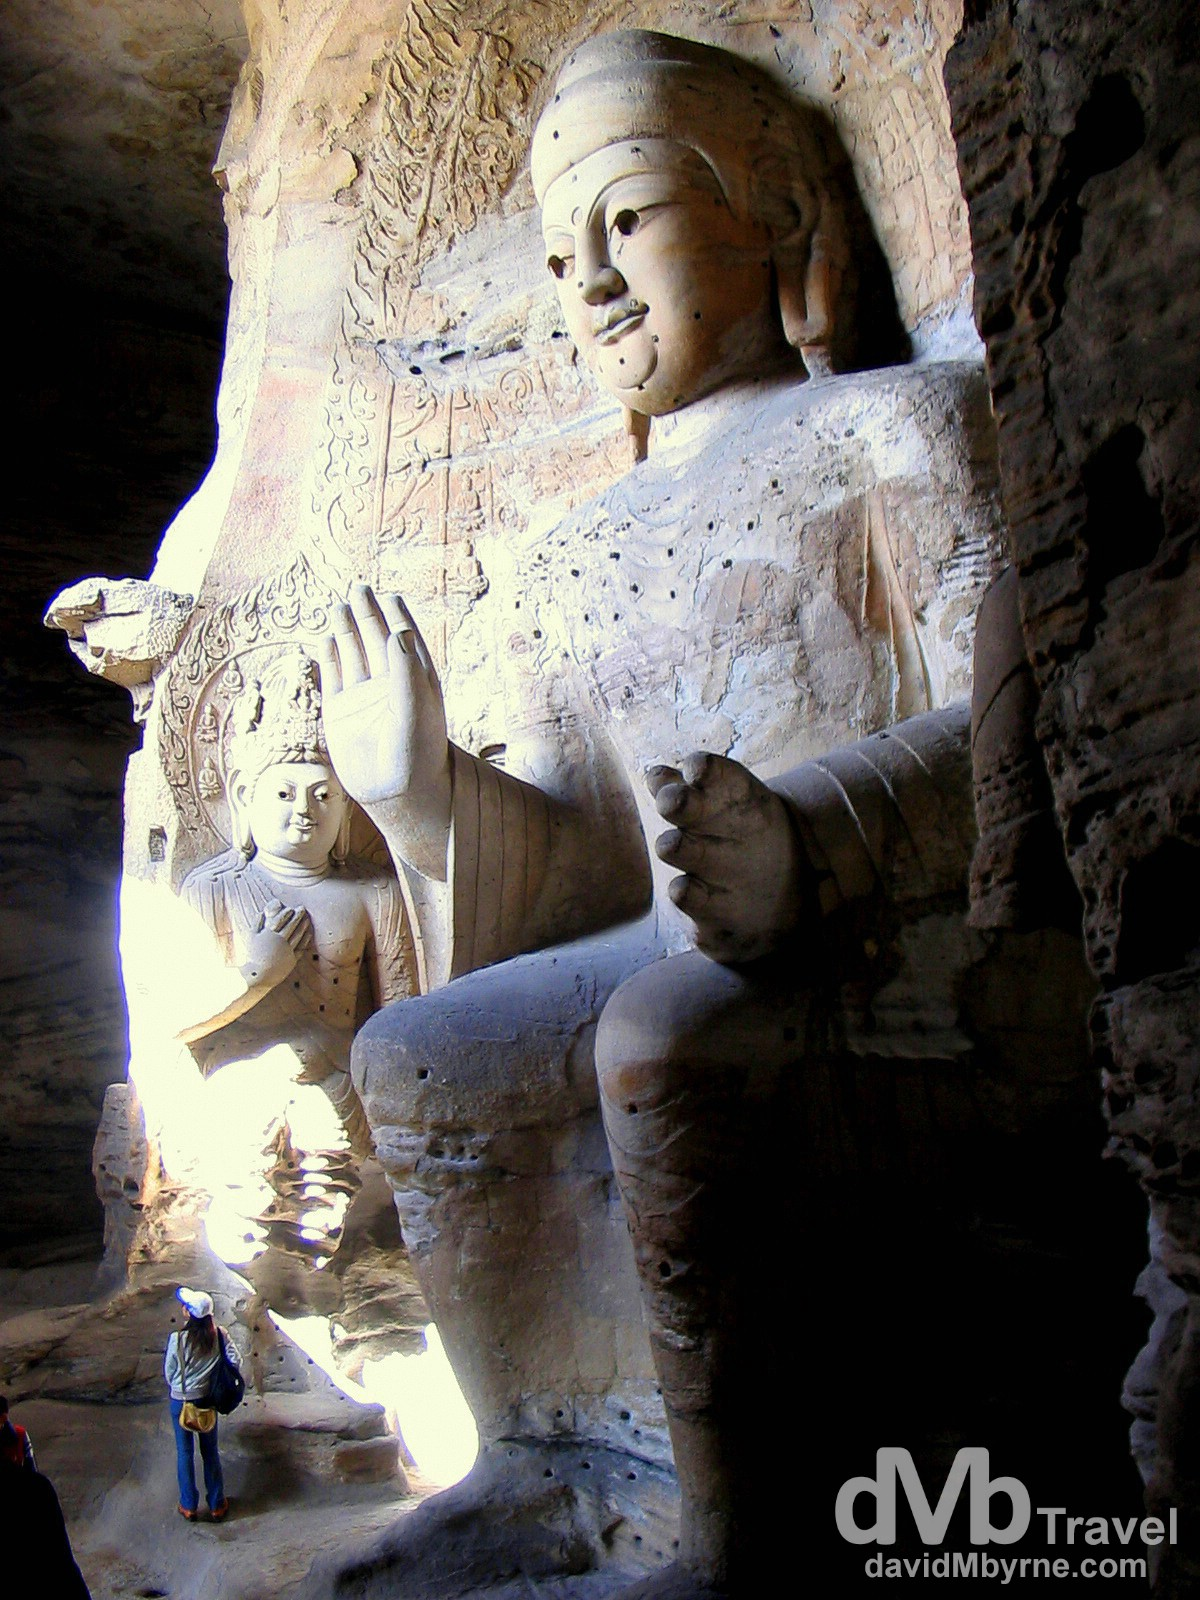 Buddha & Attendants Of Cave 3, Yungang Caves, Datong, Shanxi Provence, China. October 2nd 2004.